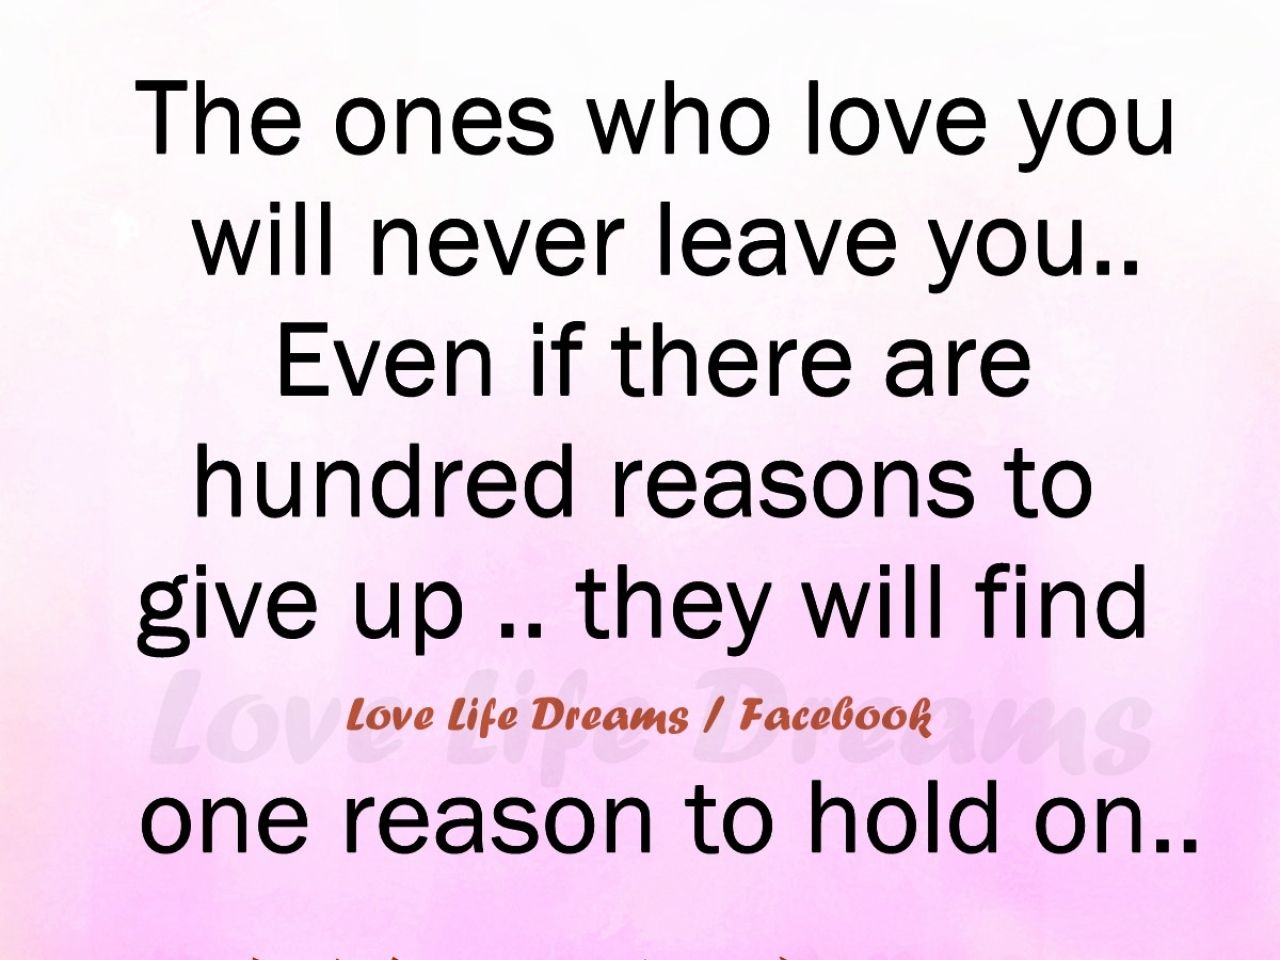 Quotes About Trust And Love In Relationships Quotes On Giving Up On Someone You Love  Quotes  Pinterest